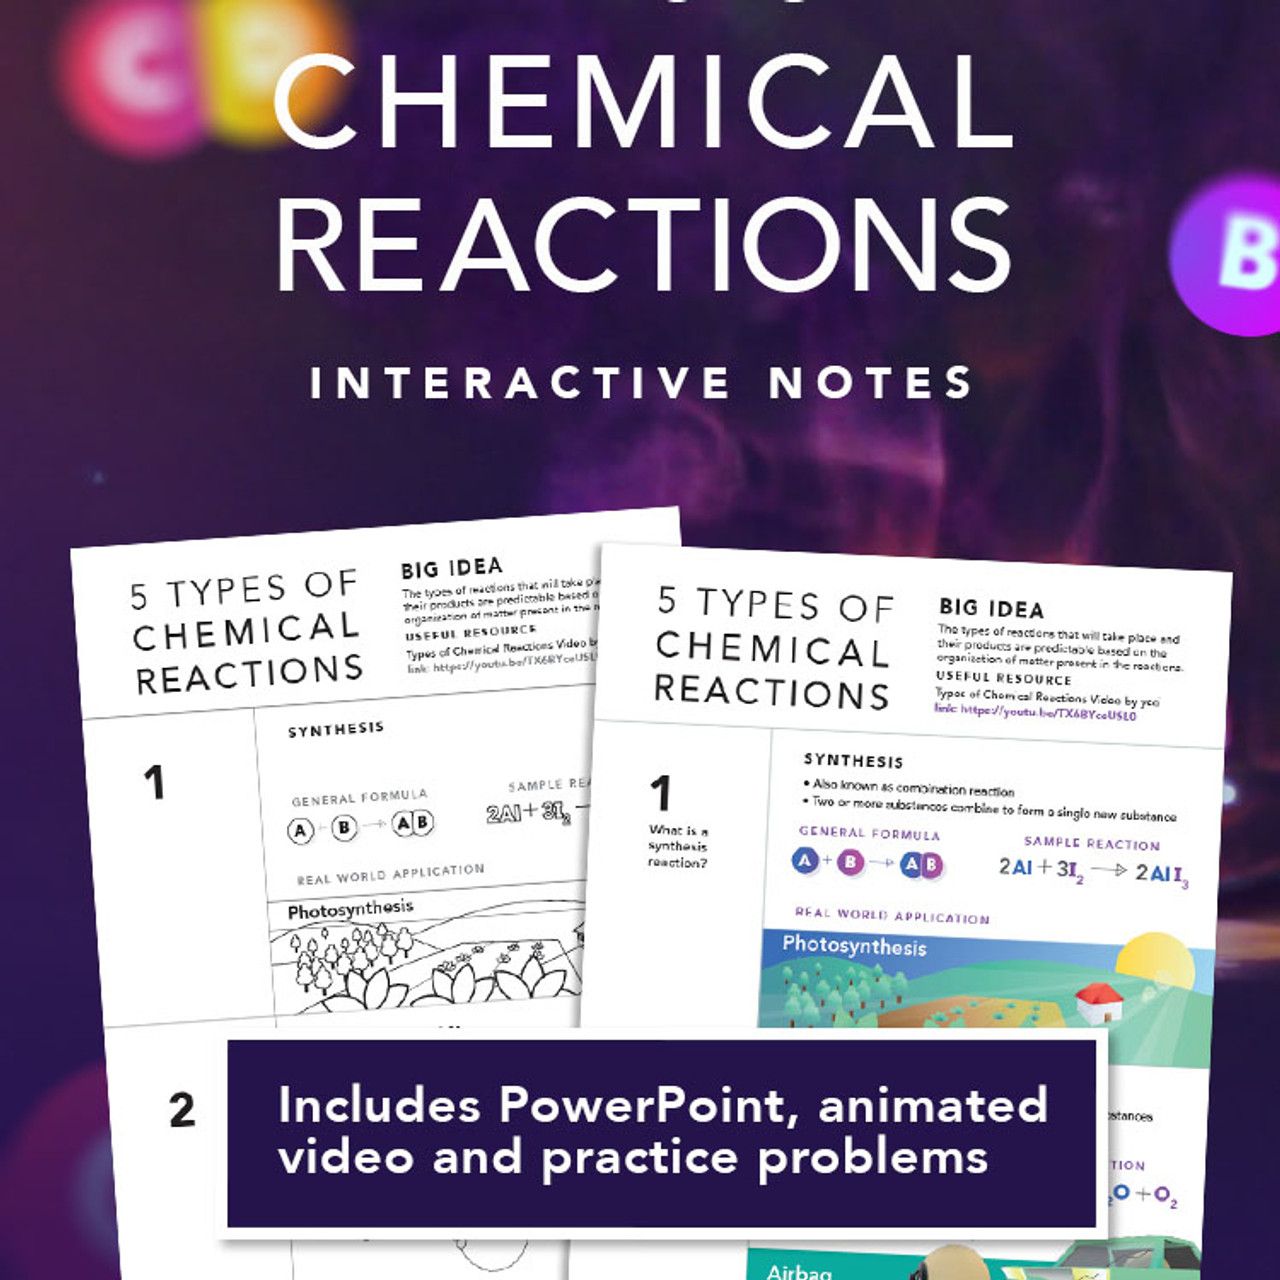 Types of Chemical Reactions Interactive Notes with PowerPoint